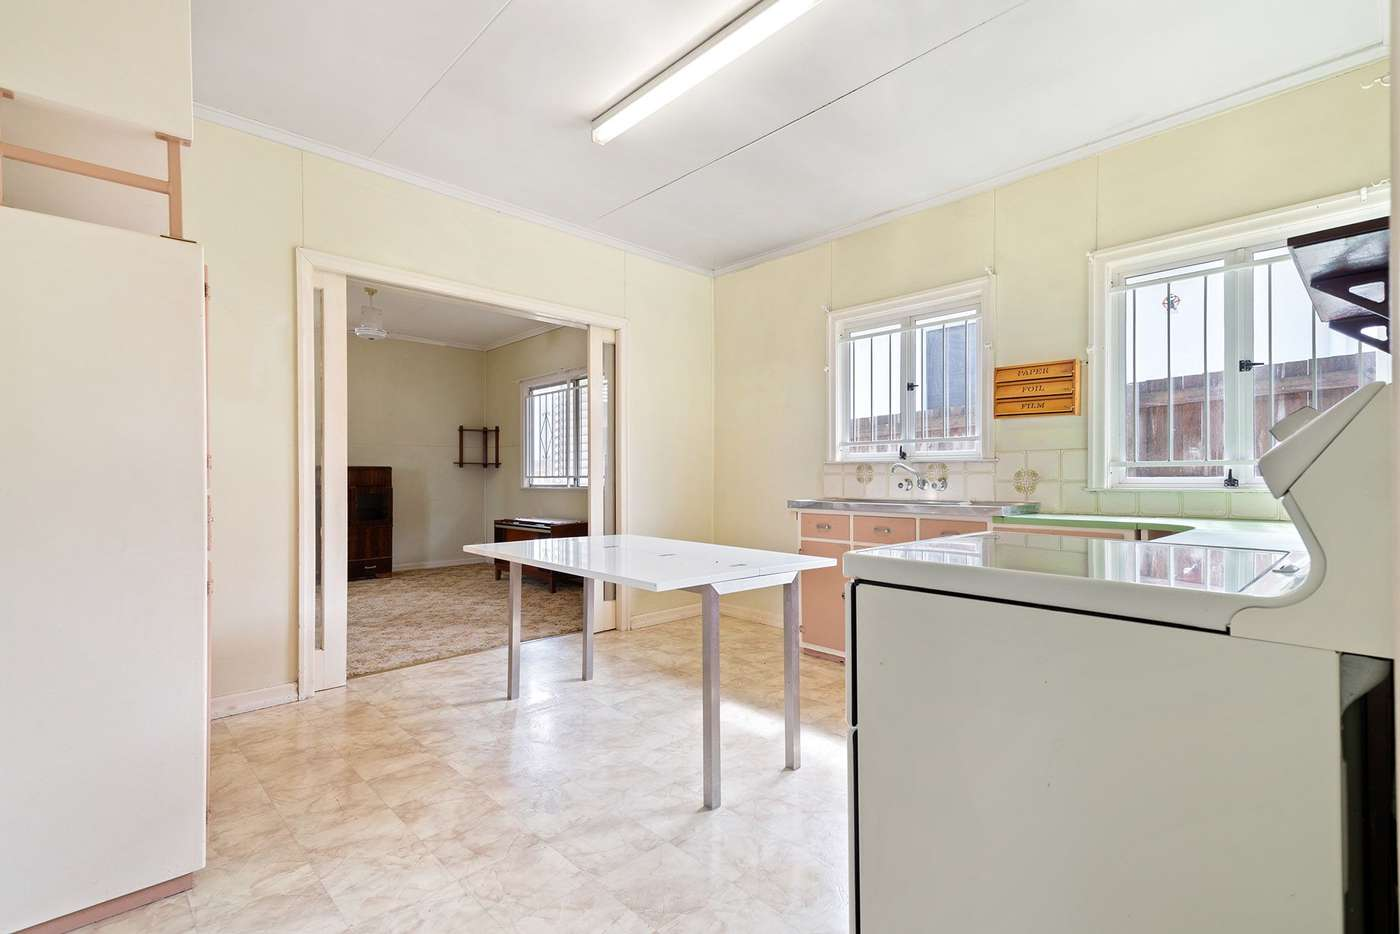 Sixth view of Homely house listing, 15 Gatton Street, Mount Gravatt East QLD 4122